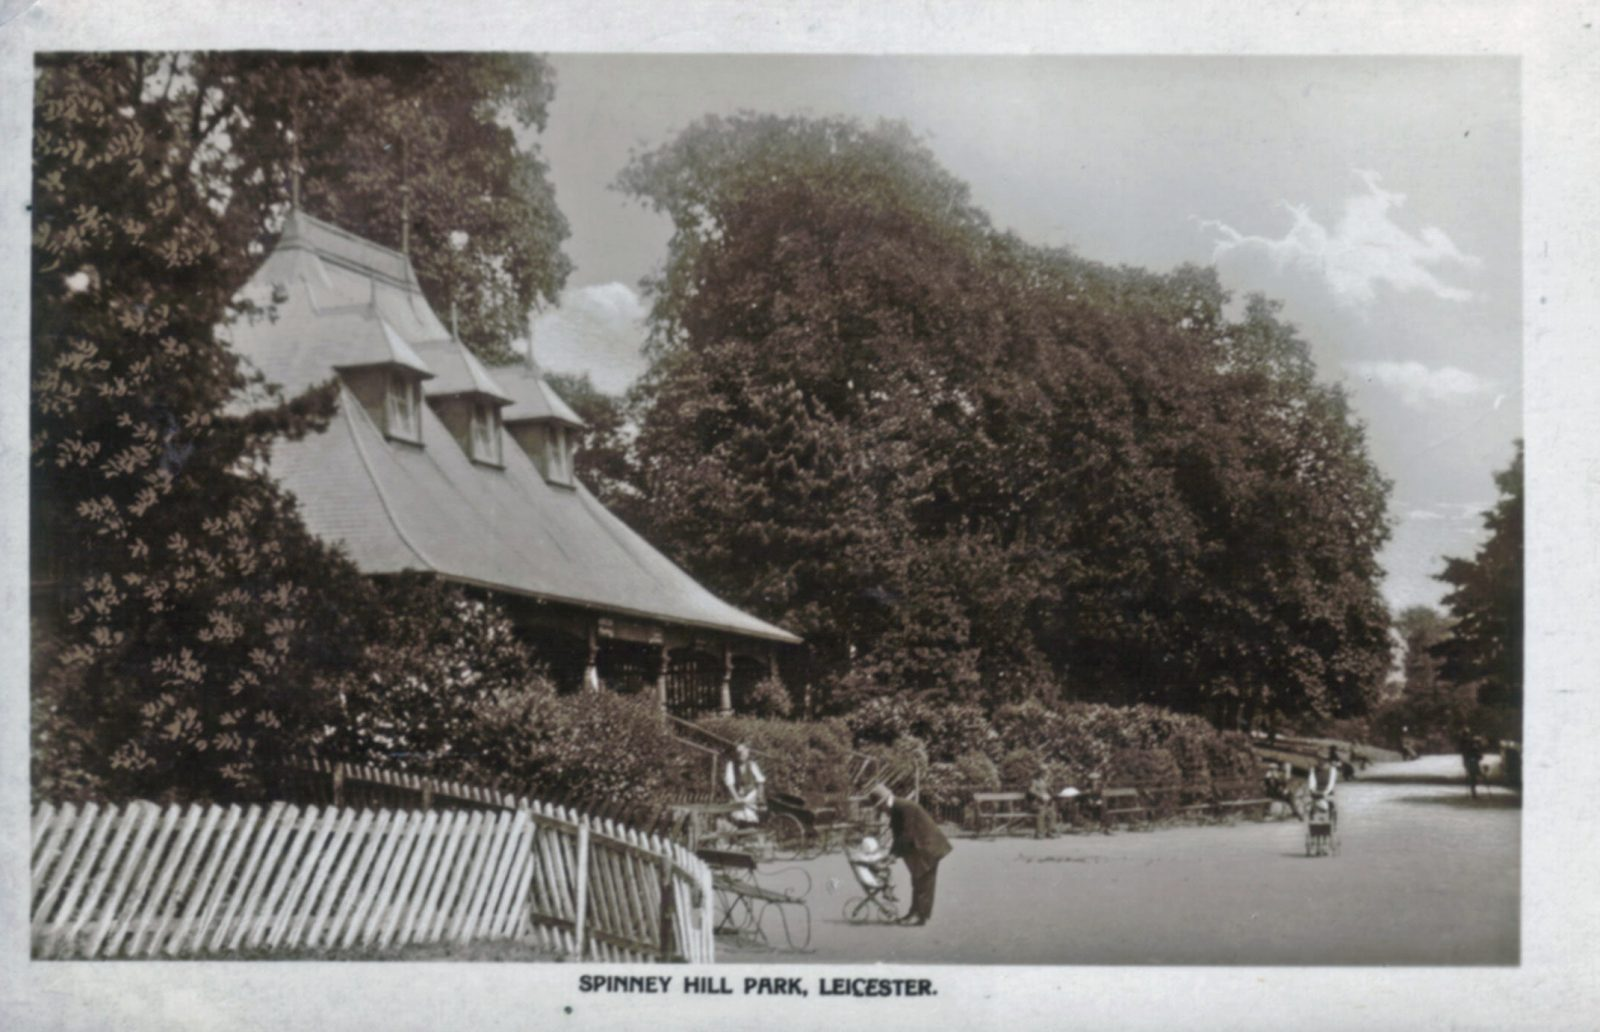 Spinney Hill Park, Leicester. 1901-1920: The Pavilion and broad avenue with children in prams. (File:1200)